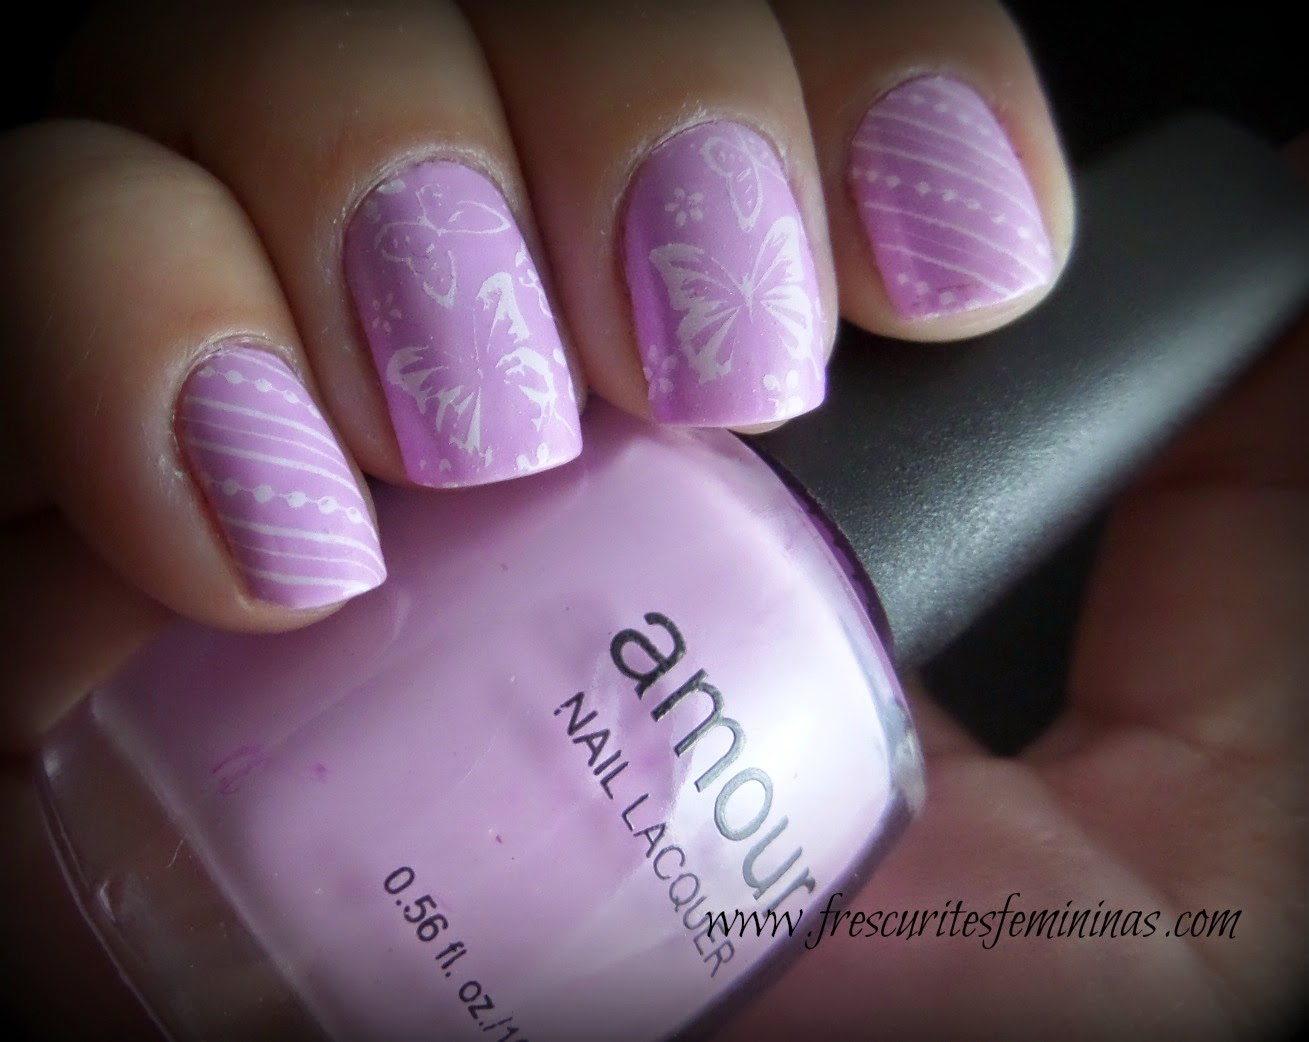 Amour, grandpappy pimpin', frescurites femininas, blog, nails, Atlanta